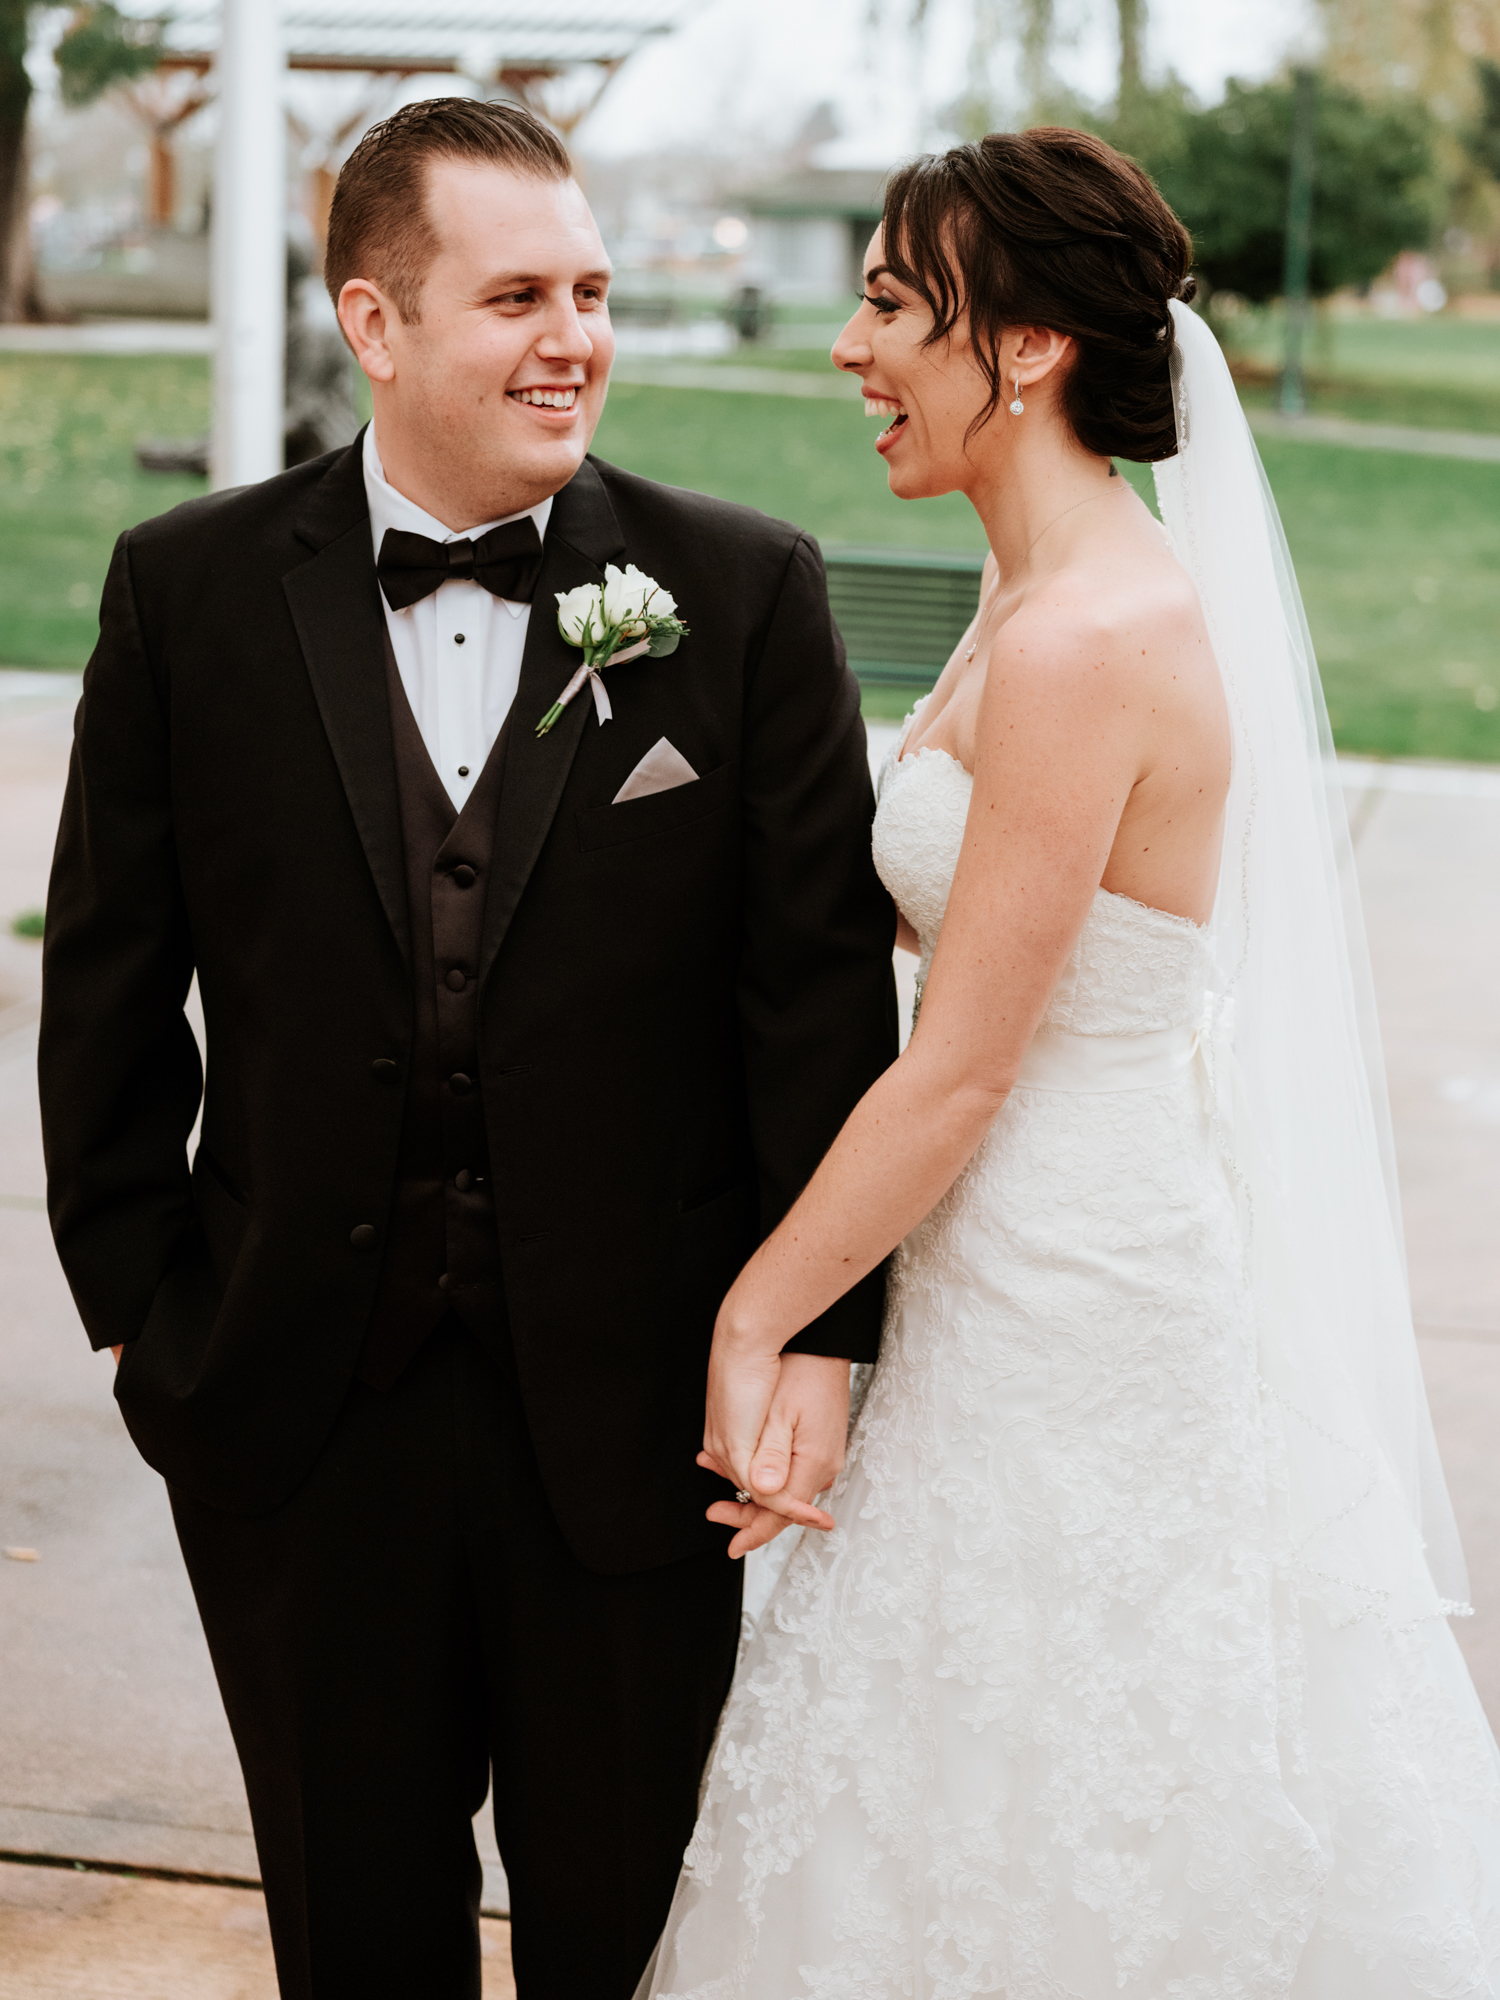 Stolen Glimpses Seattle Wedding Photographers 34.jpg